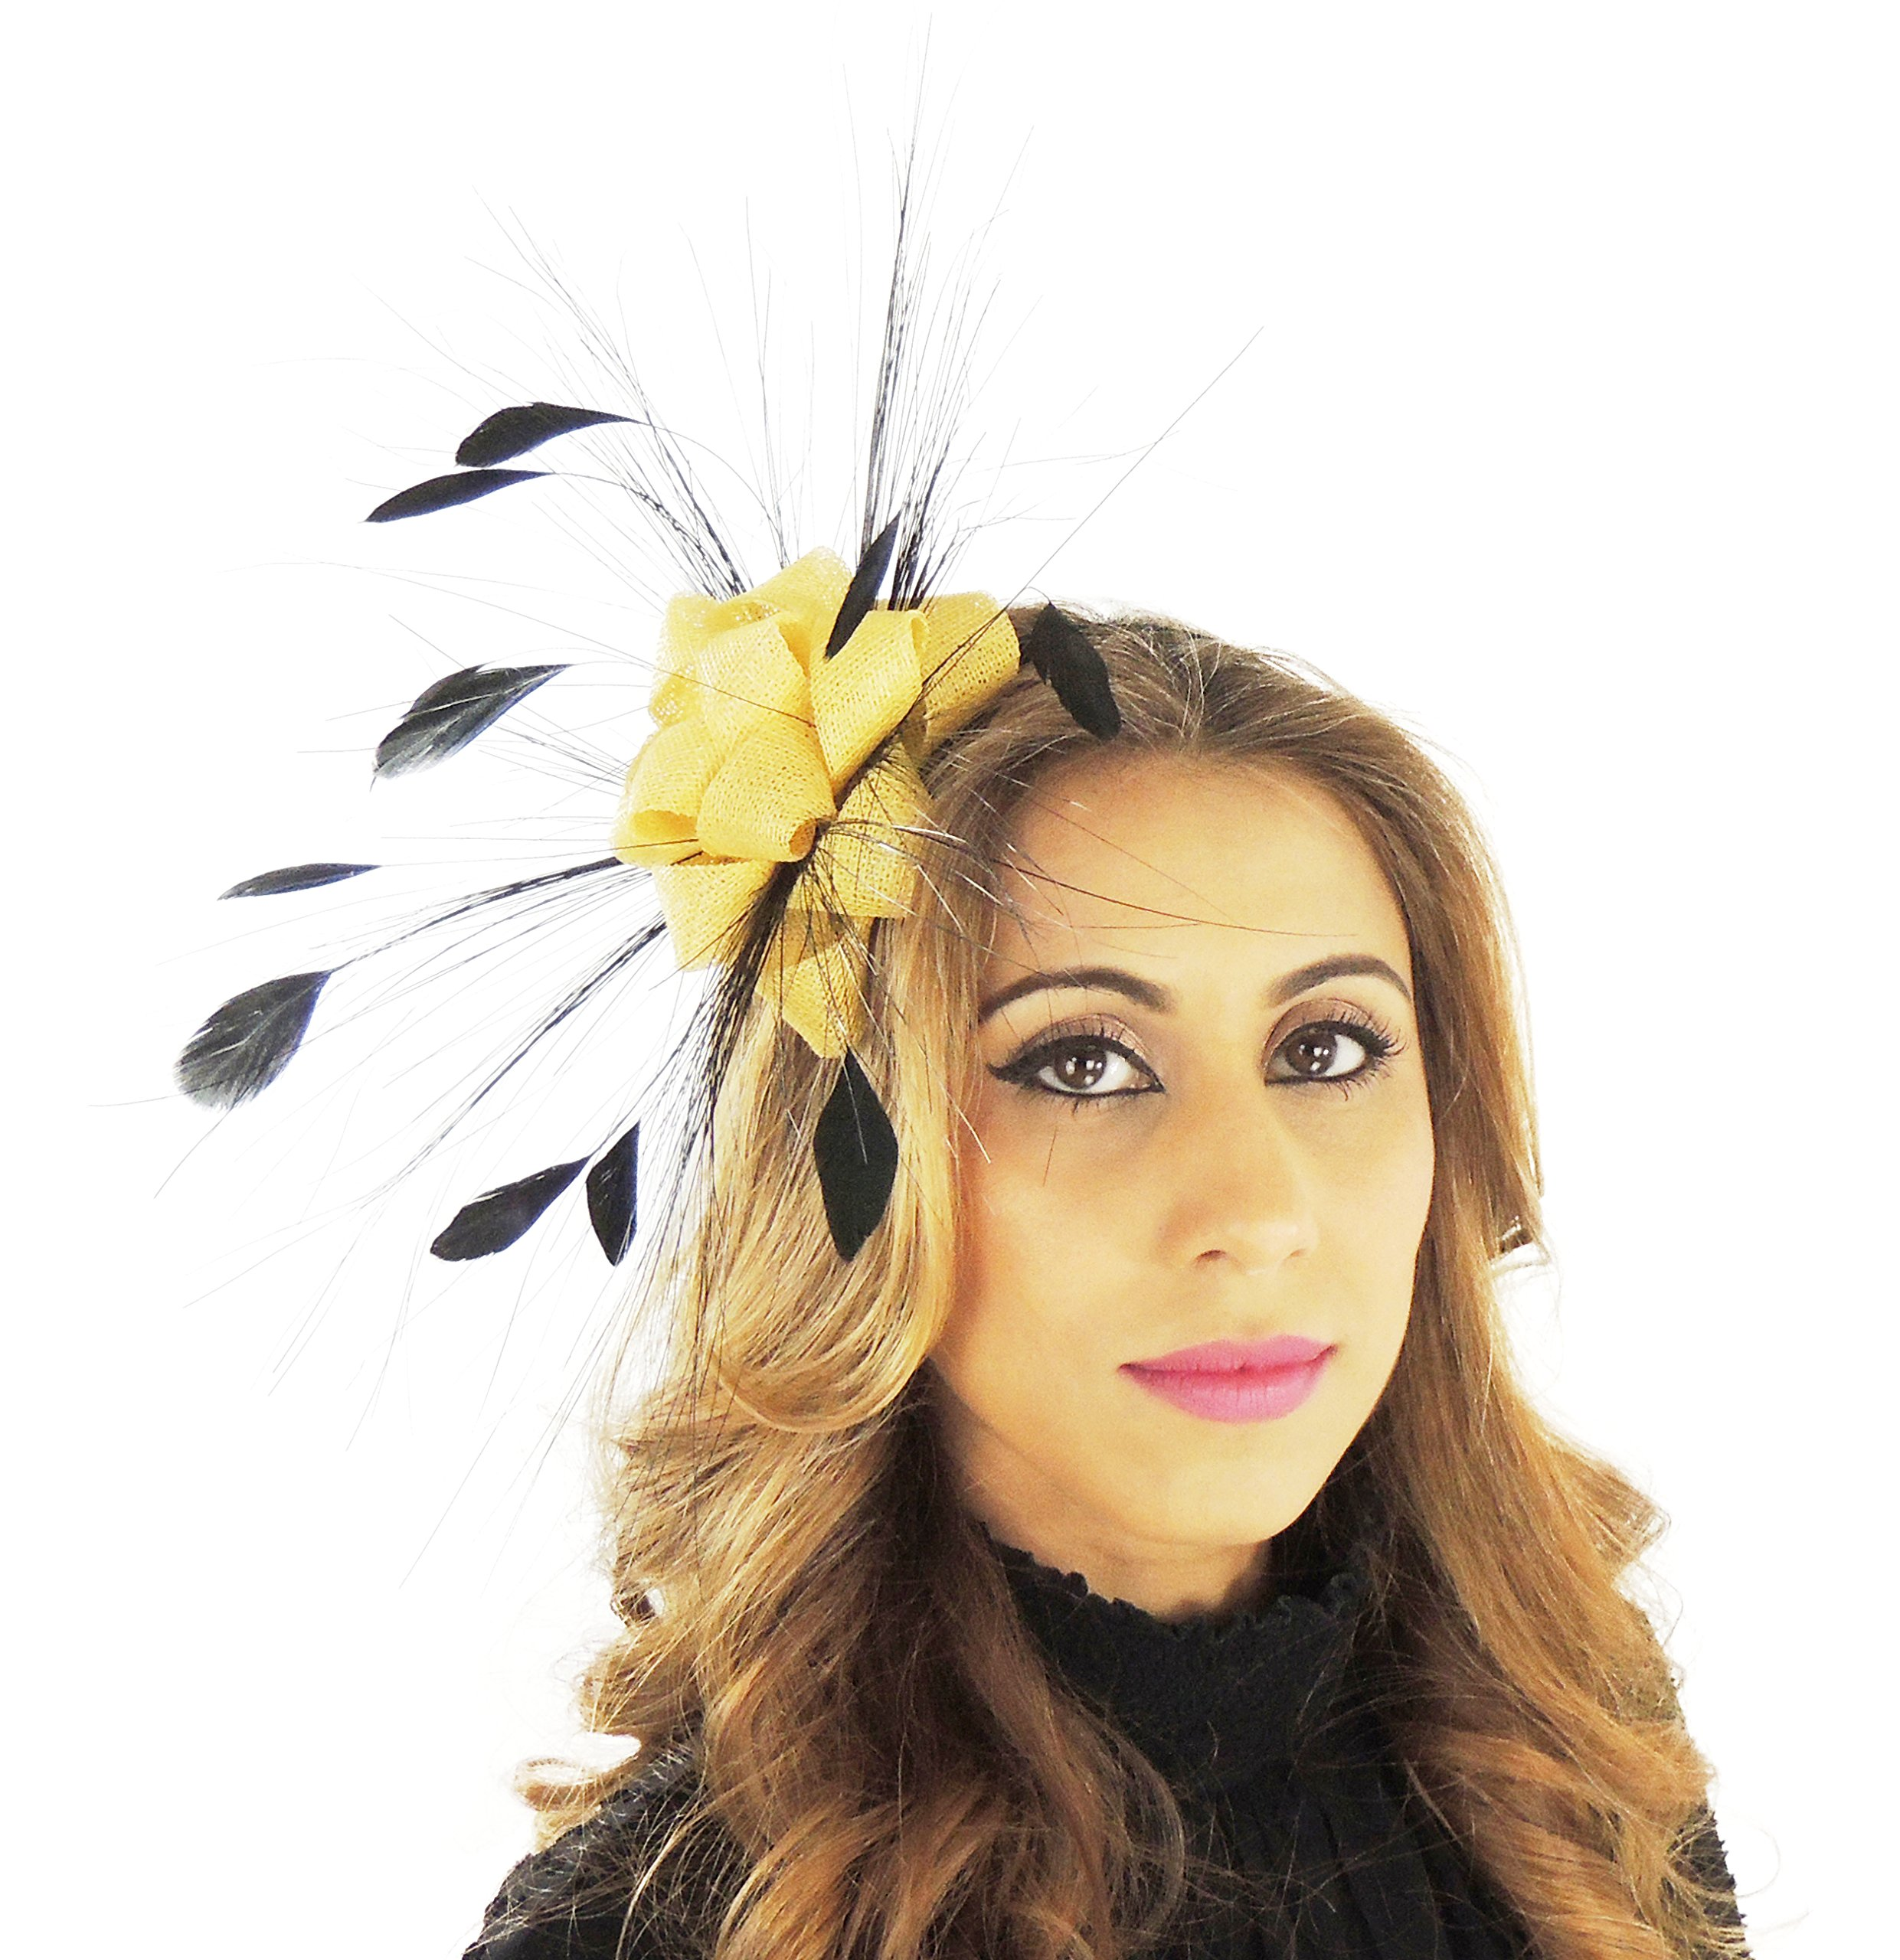 Hats By Cressida Ladies Wedding Races Ascot Derby Small Fascinator Headband Yellow & Black by Hats By Cressida